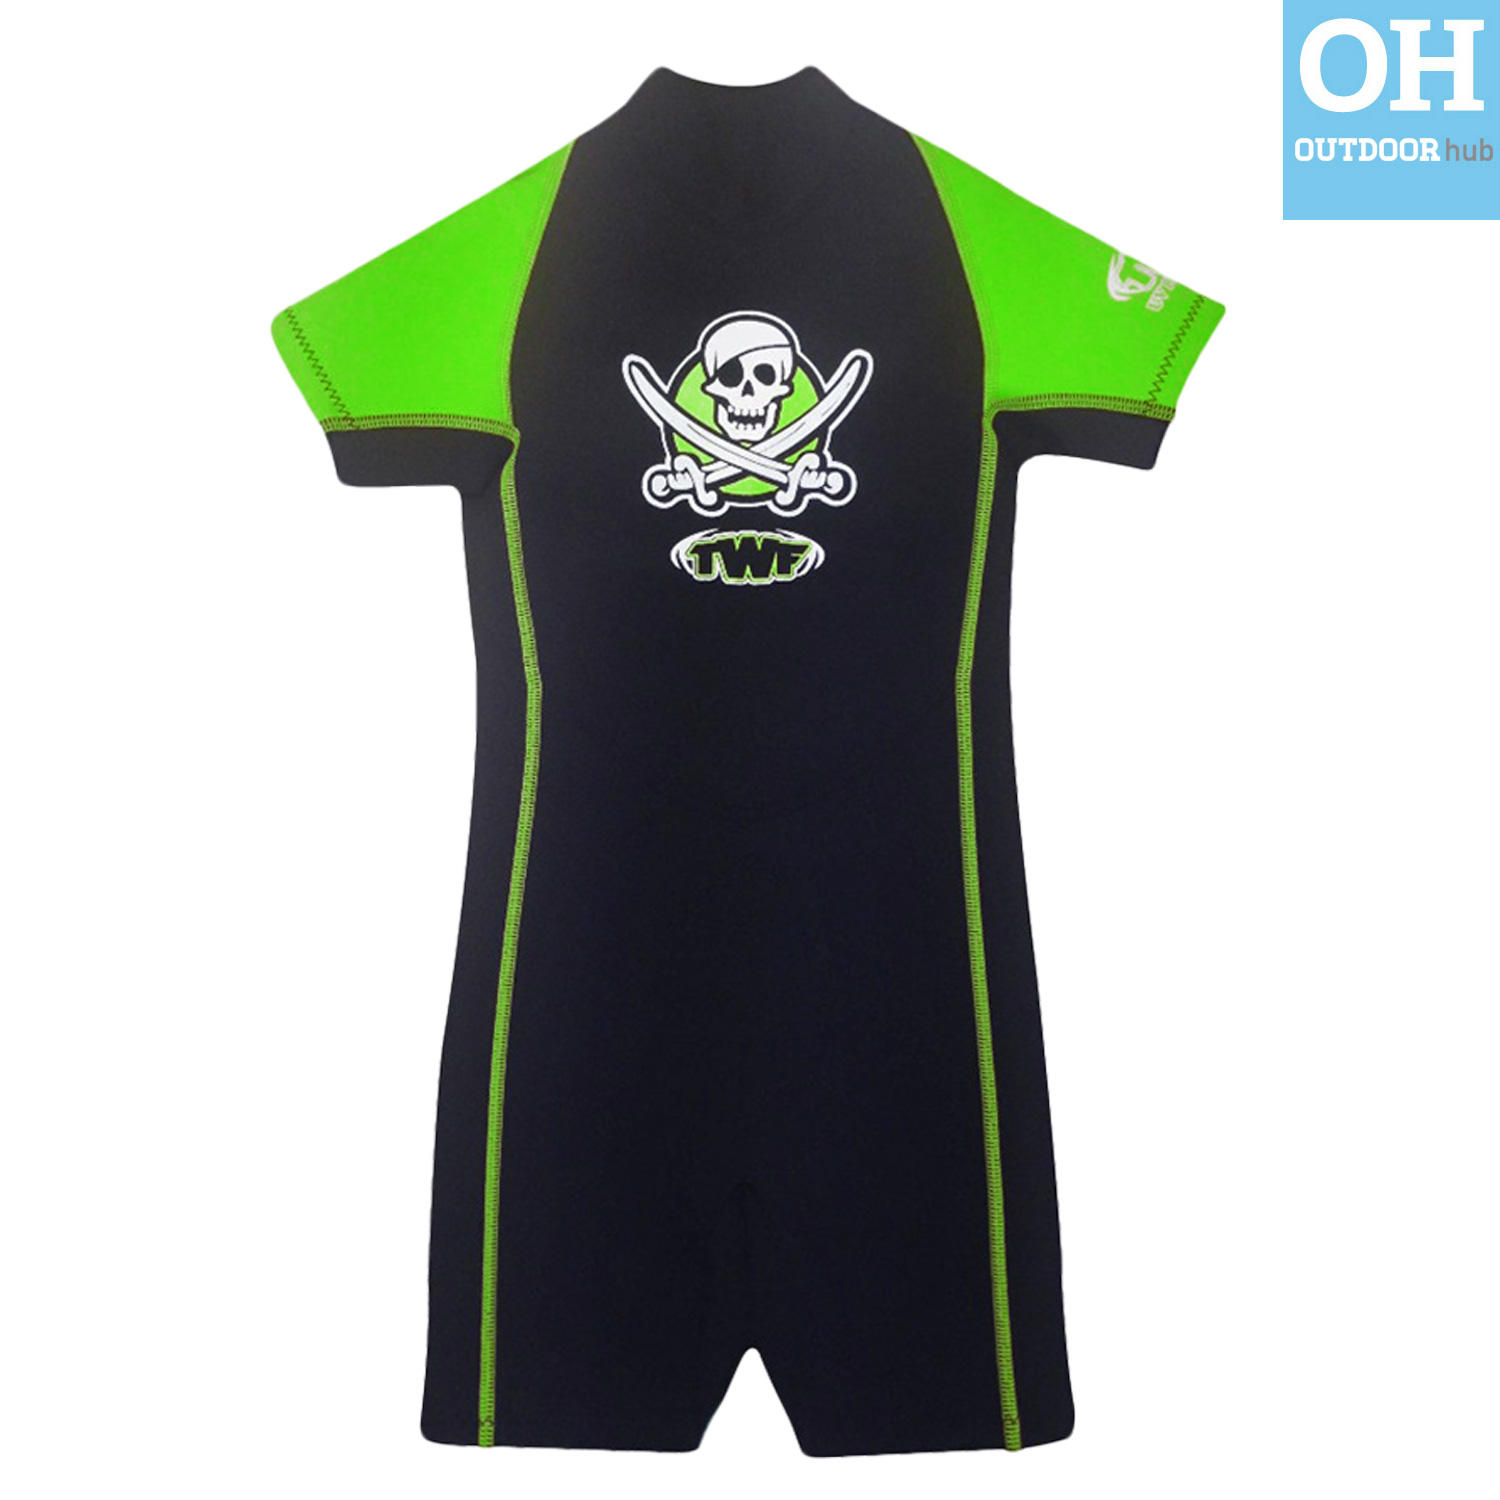 TWF-2mm-Kids-Shortie-Wetsuit-Childs-Shorty-Boys-Girls-Beach-Swim-Baby-Toddler thumbnail 10